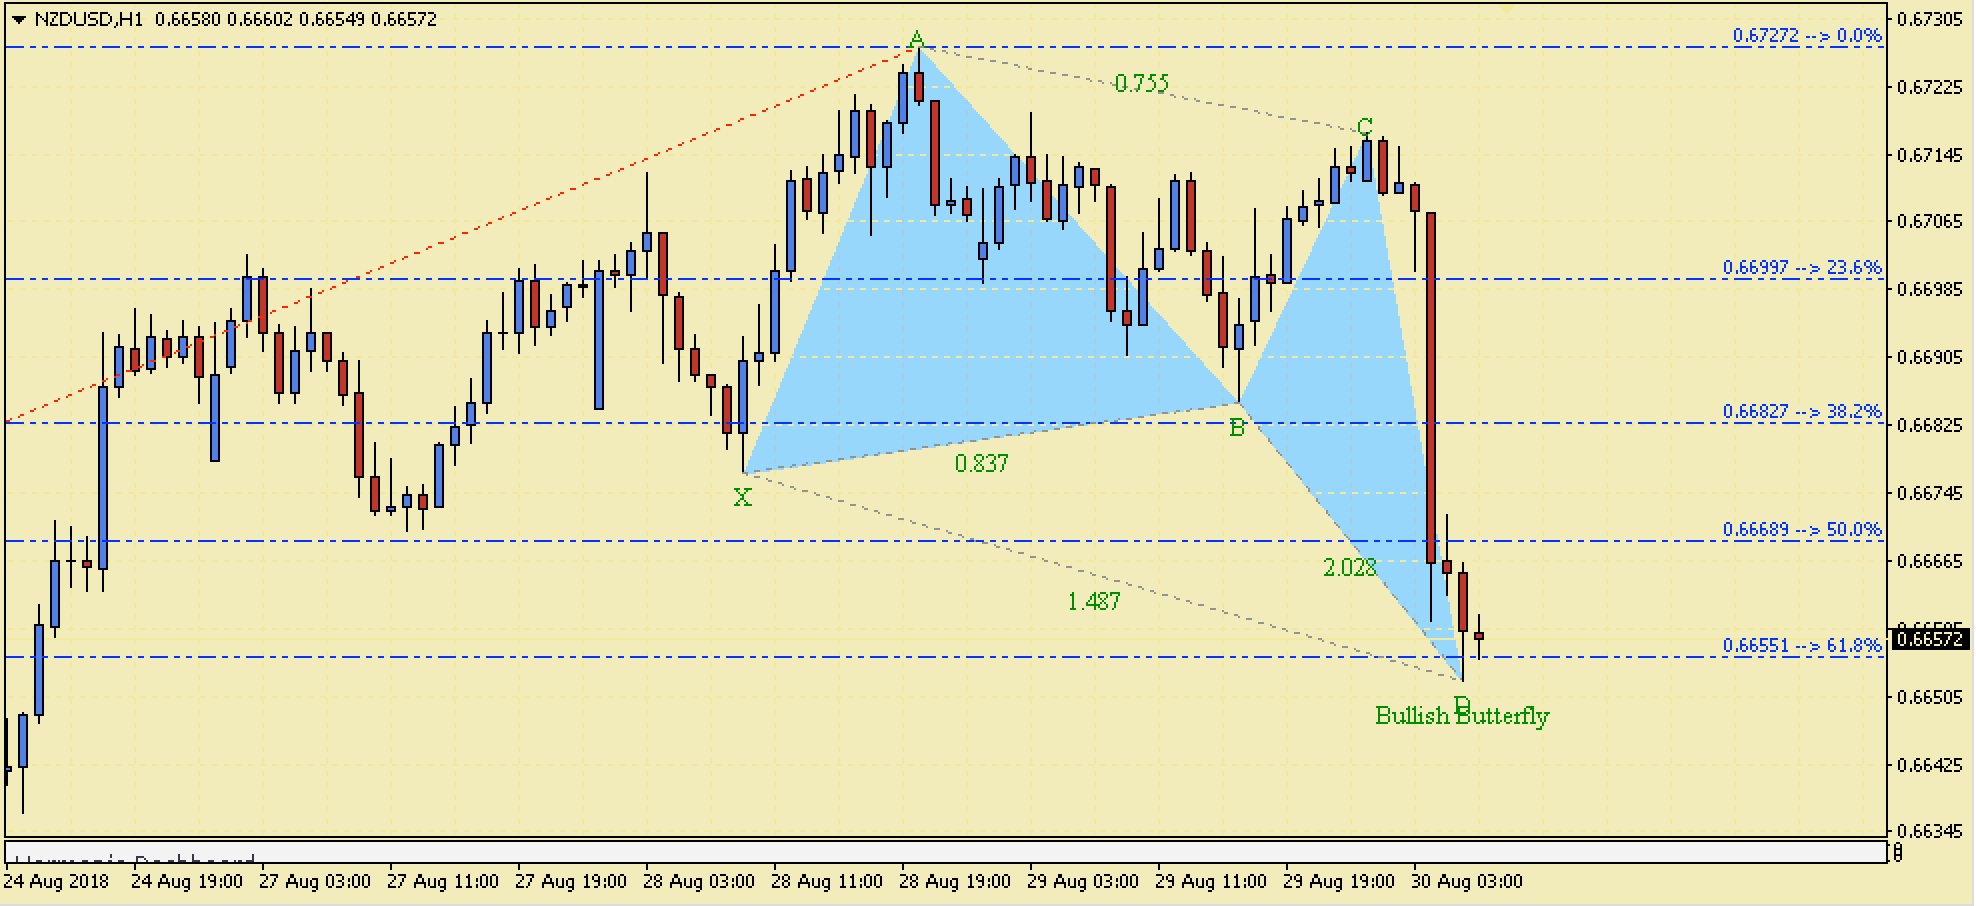 NZDUSD Bullish Butterfly Harmonic Pattern – 30th August 2018